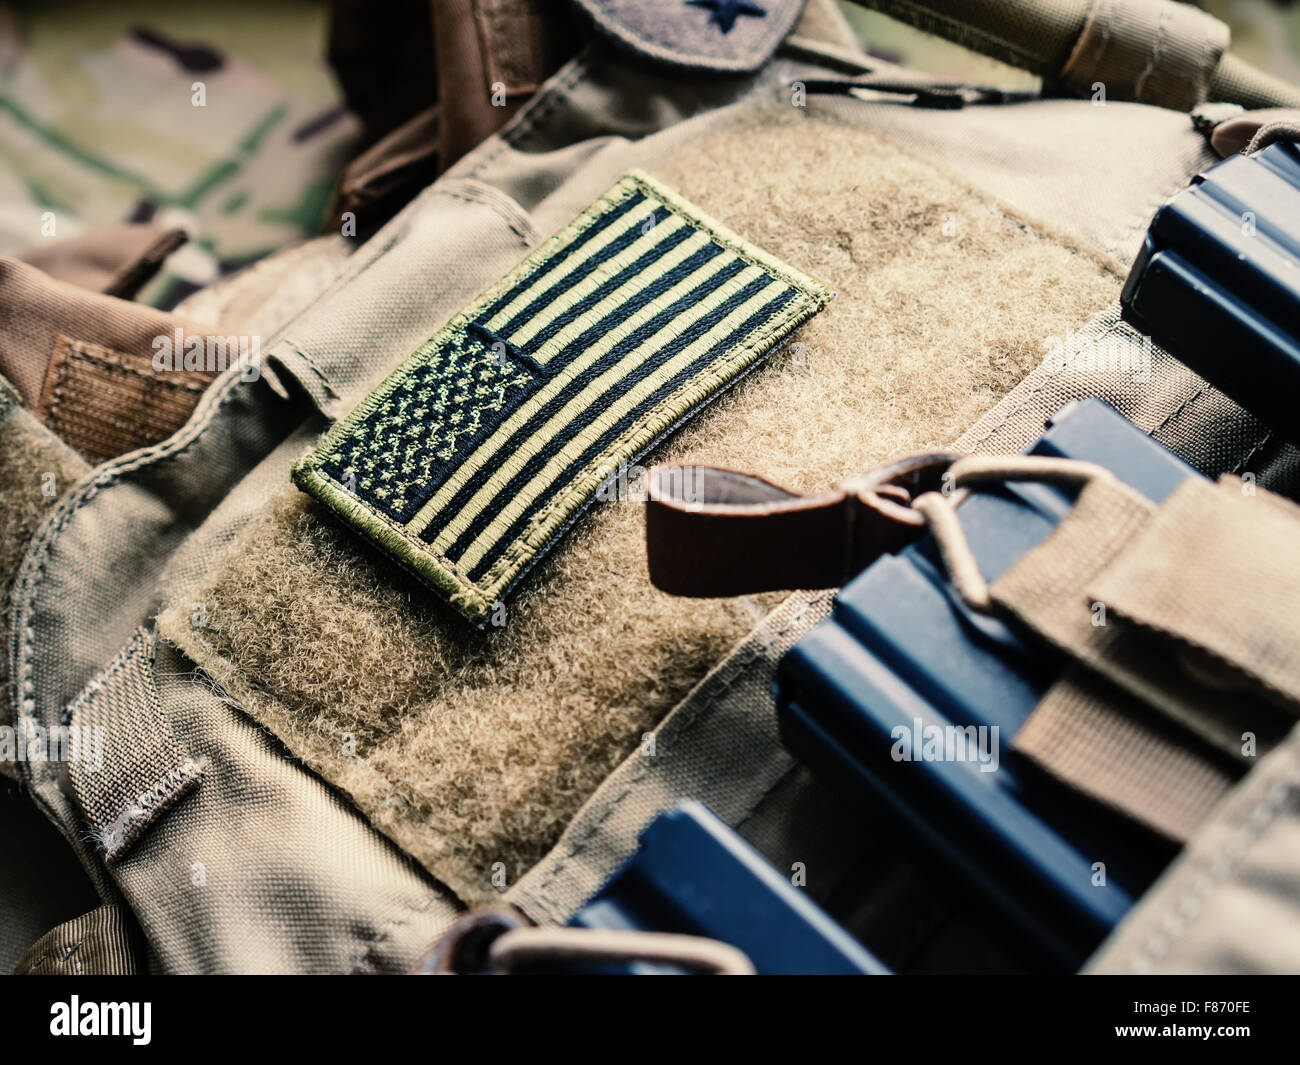 Green US flag patch on the tactical bulletproof vest with M4 magazines, selective focus - Stock Image